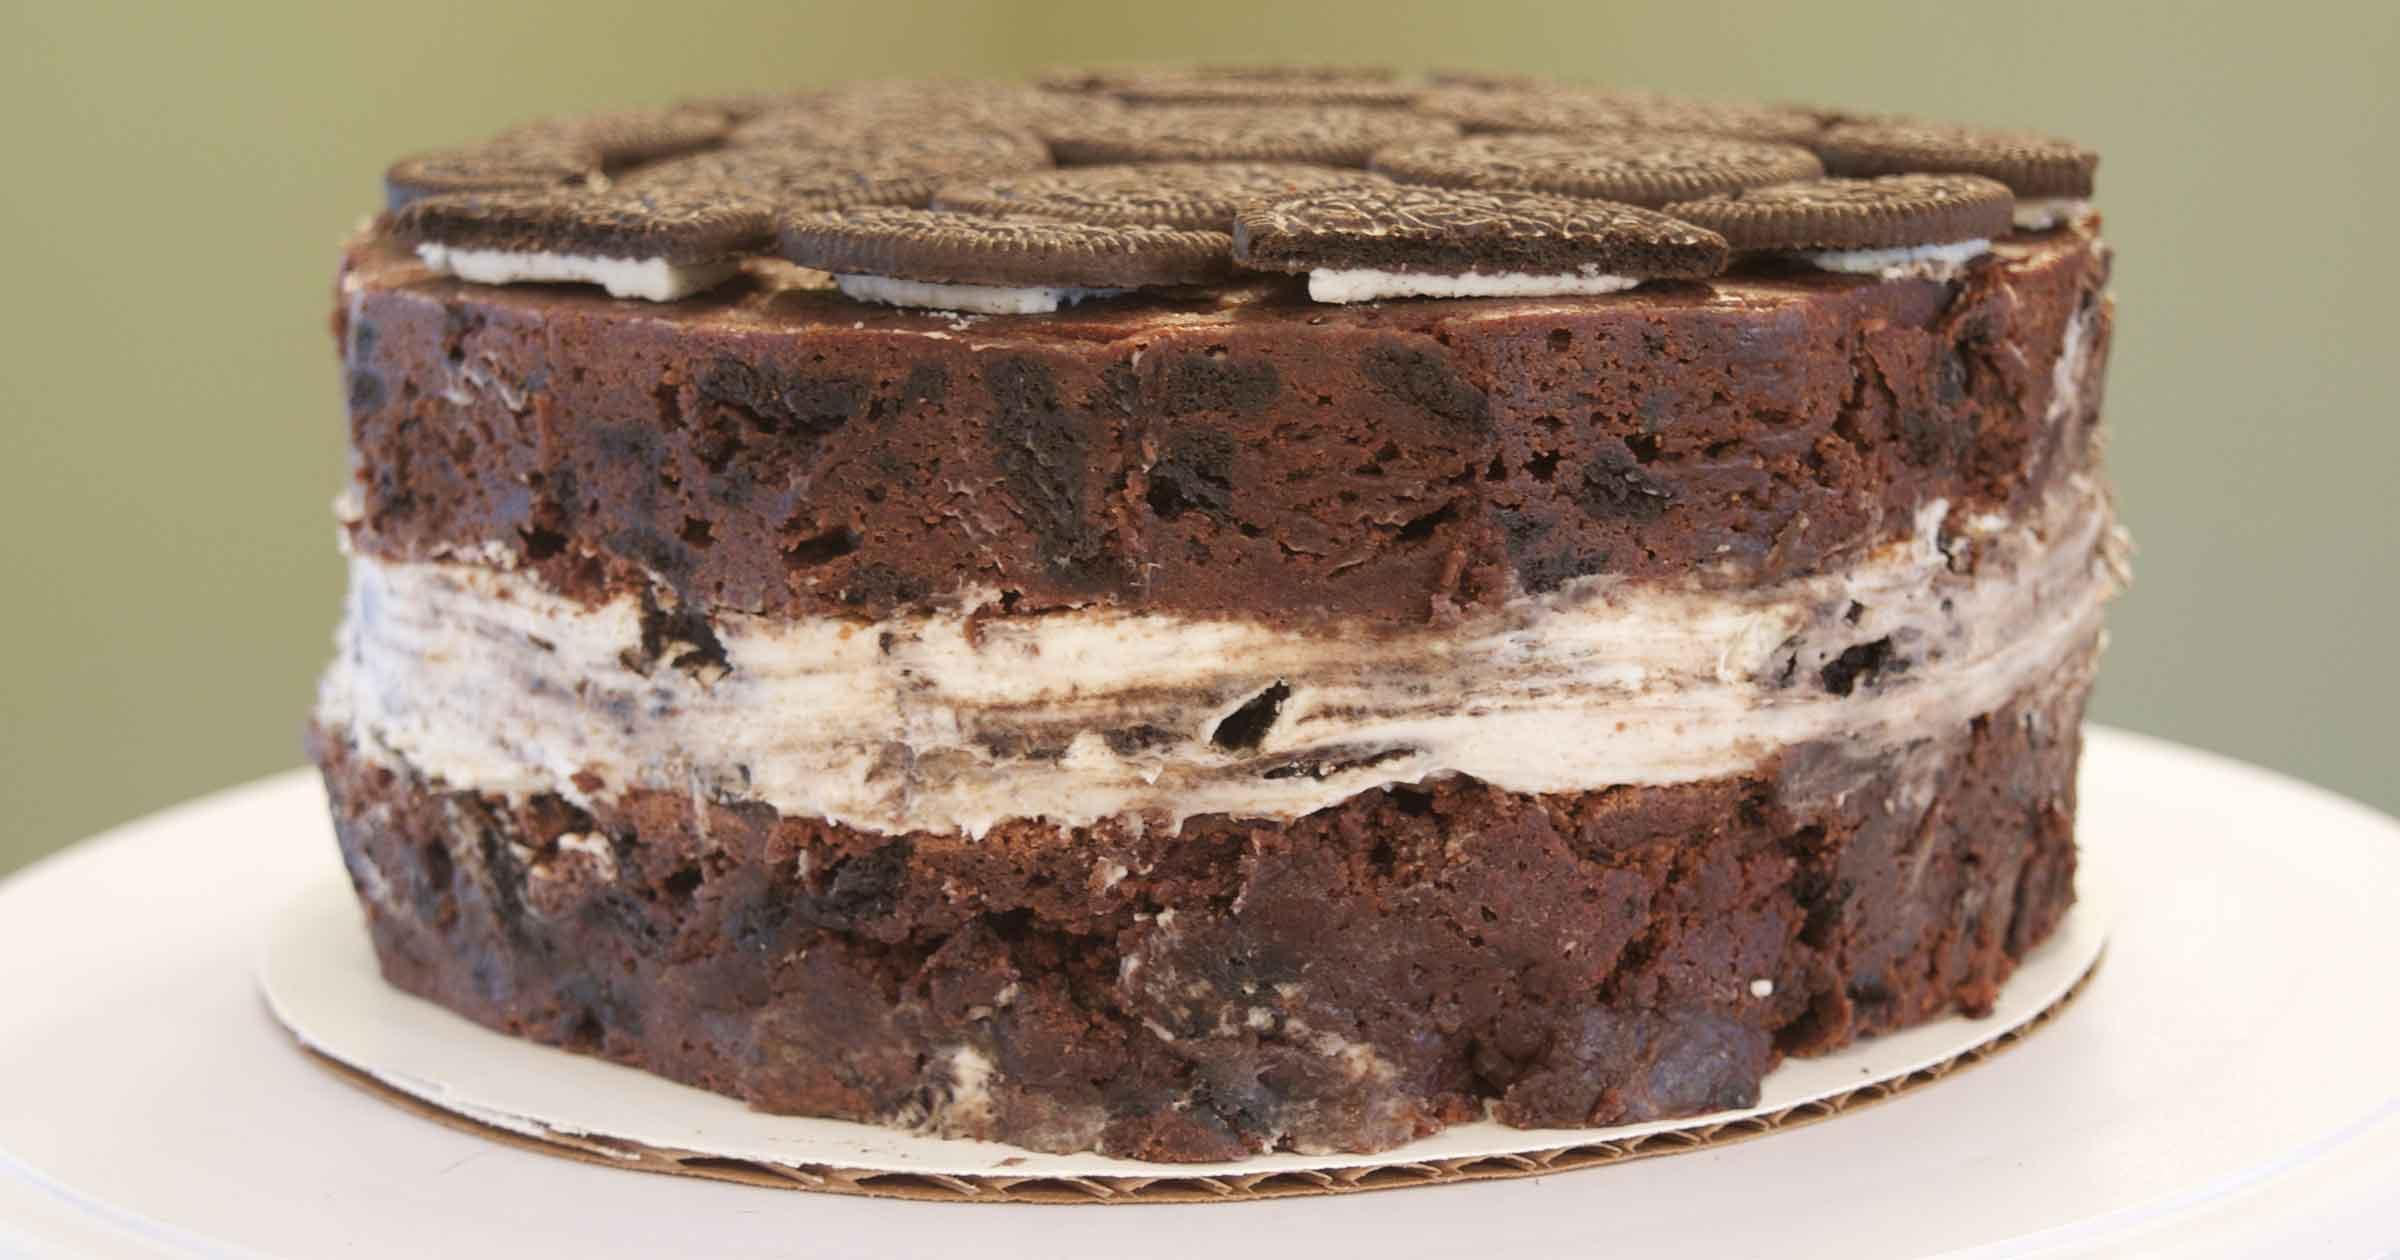 9-inch circular brownie cake that looks like a giant, thick sandwich cookie with creme filling, shown from the side